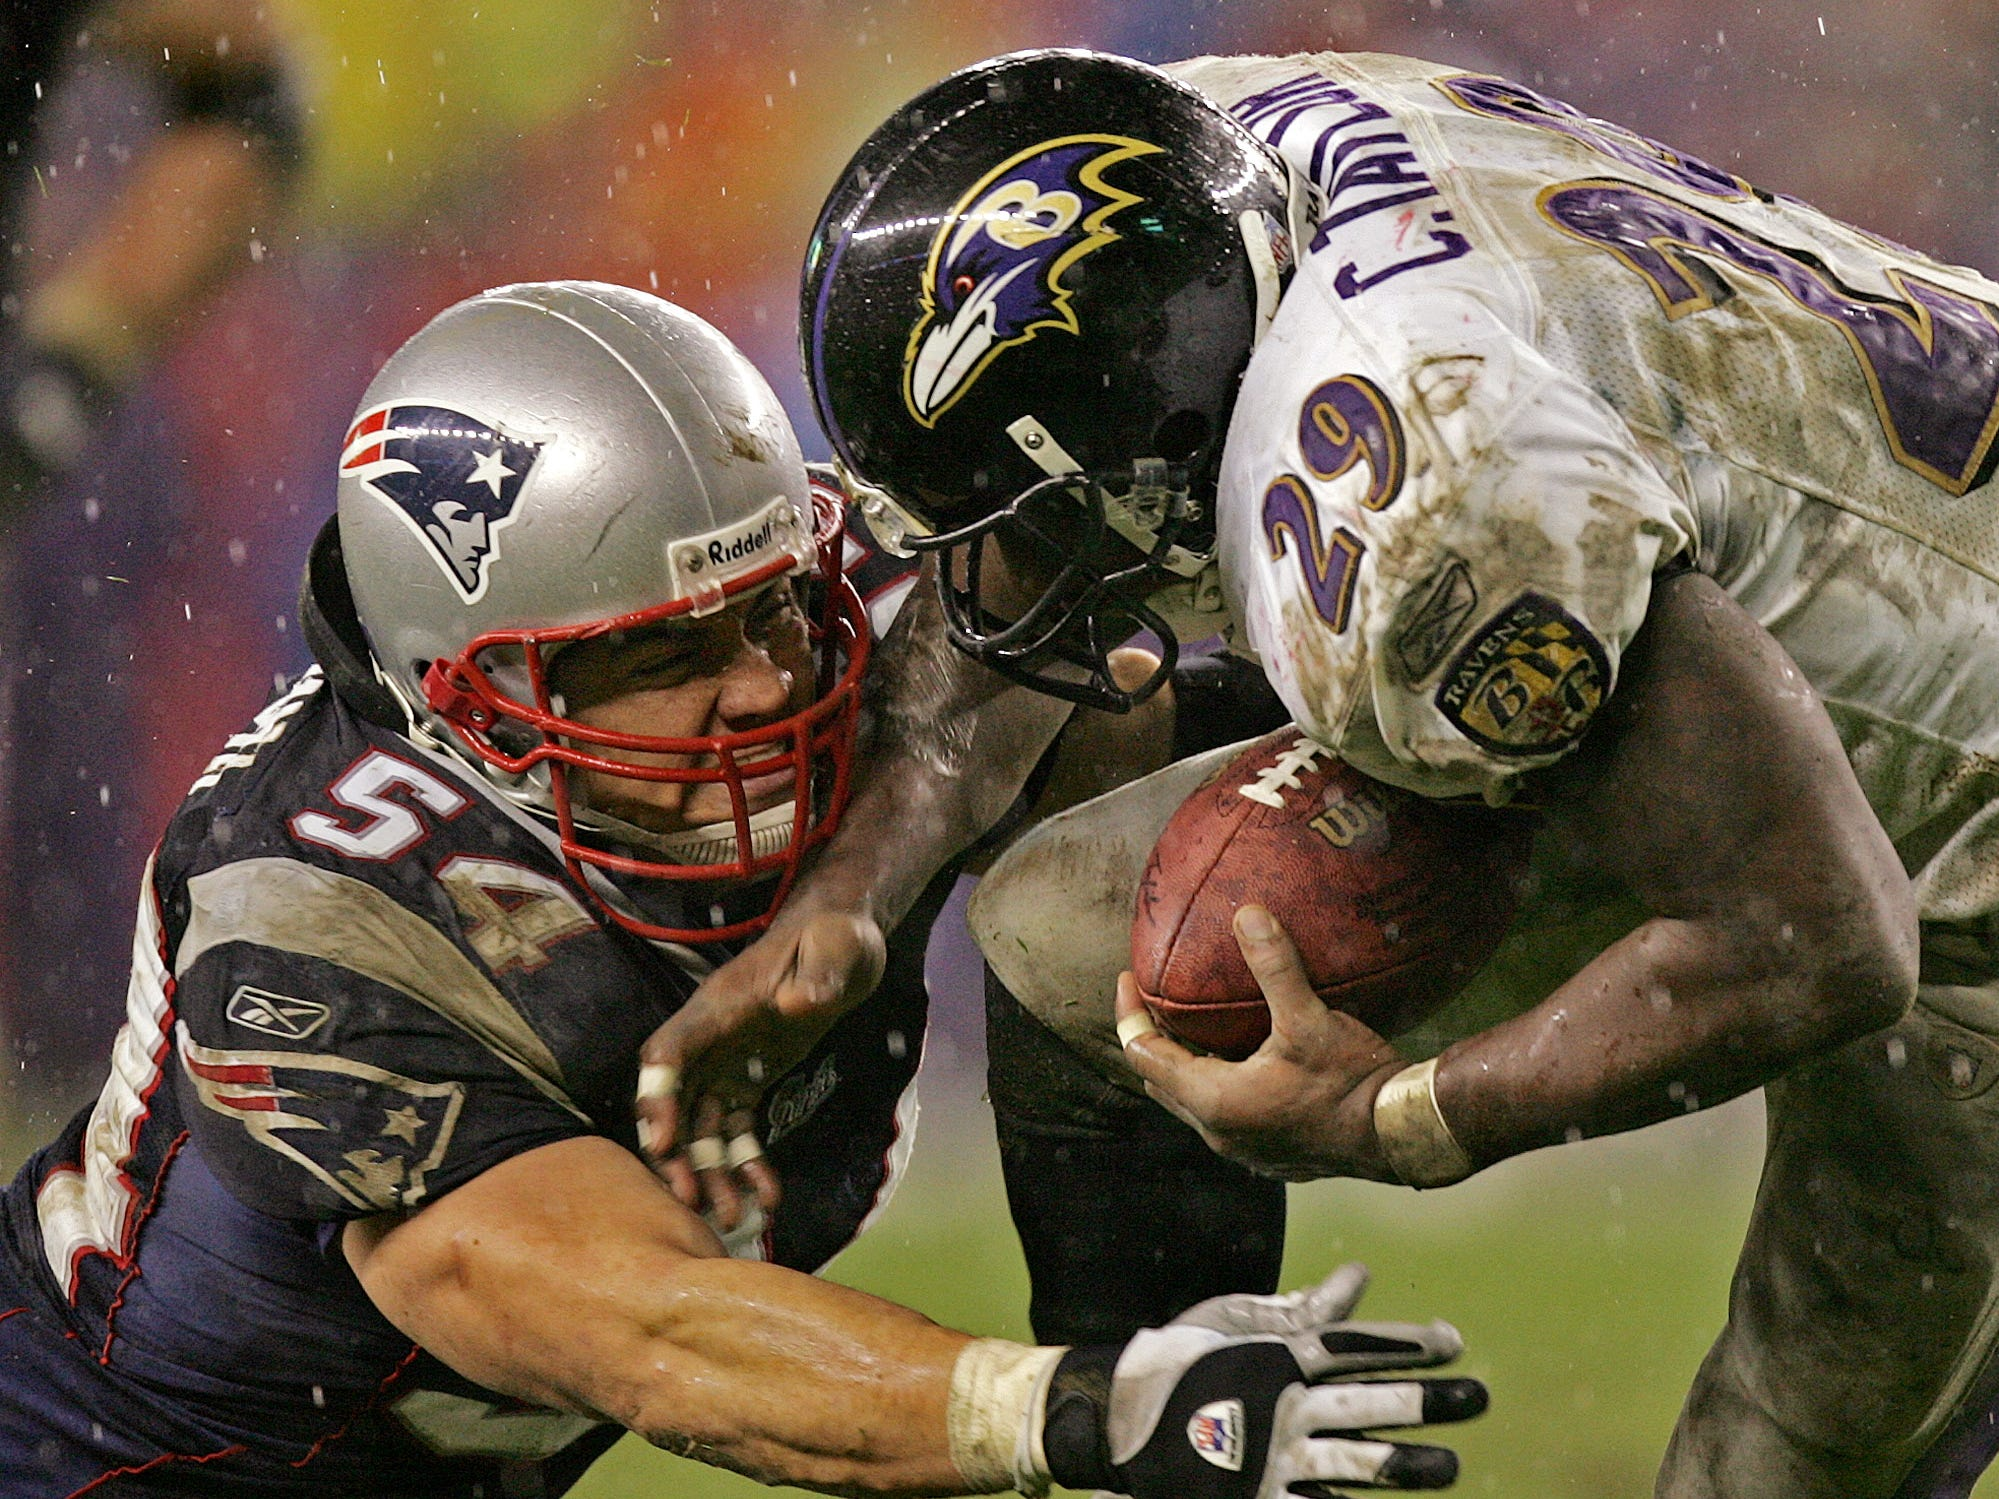 Nov. 28, 2004: New England Patriots linebacker Tedy Bruschi hits Baltimore Ravens running back Chester Taylor during the third quarter of the Patriots' 24-3 win at Gillette Stadium.